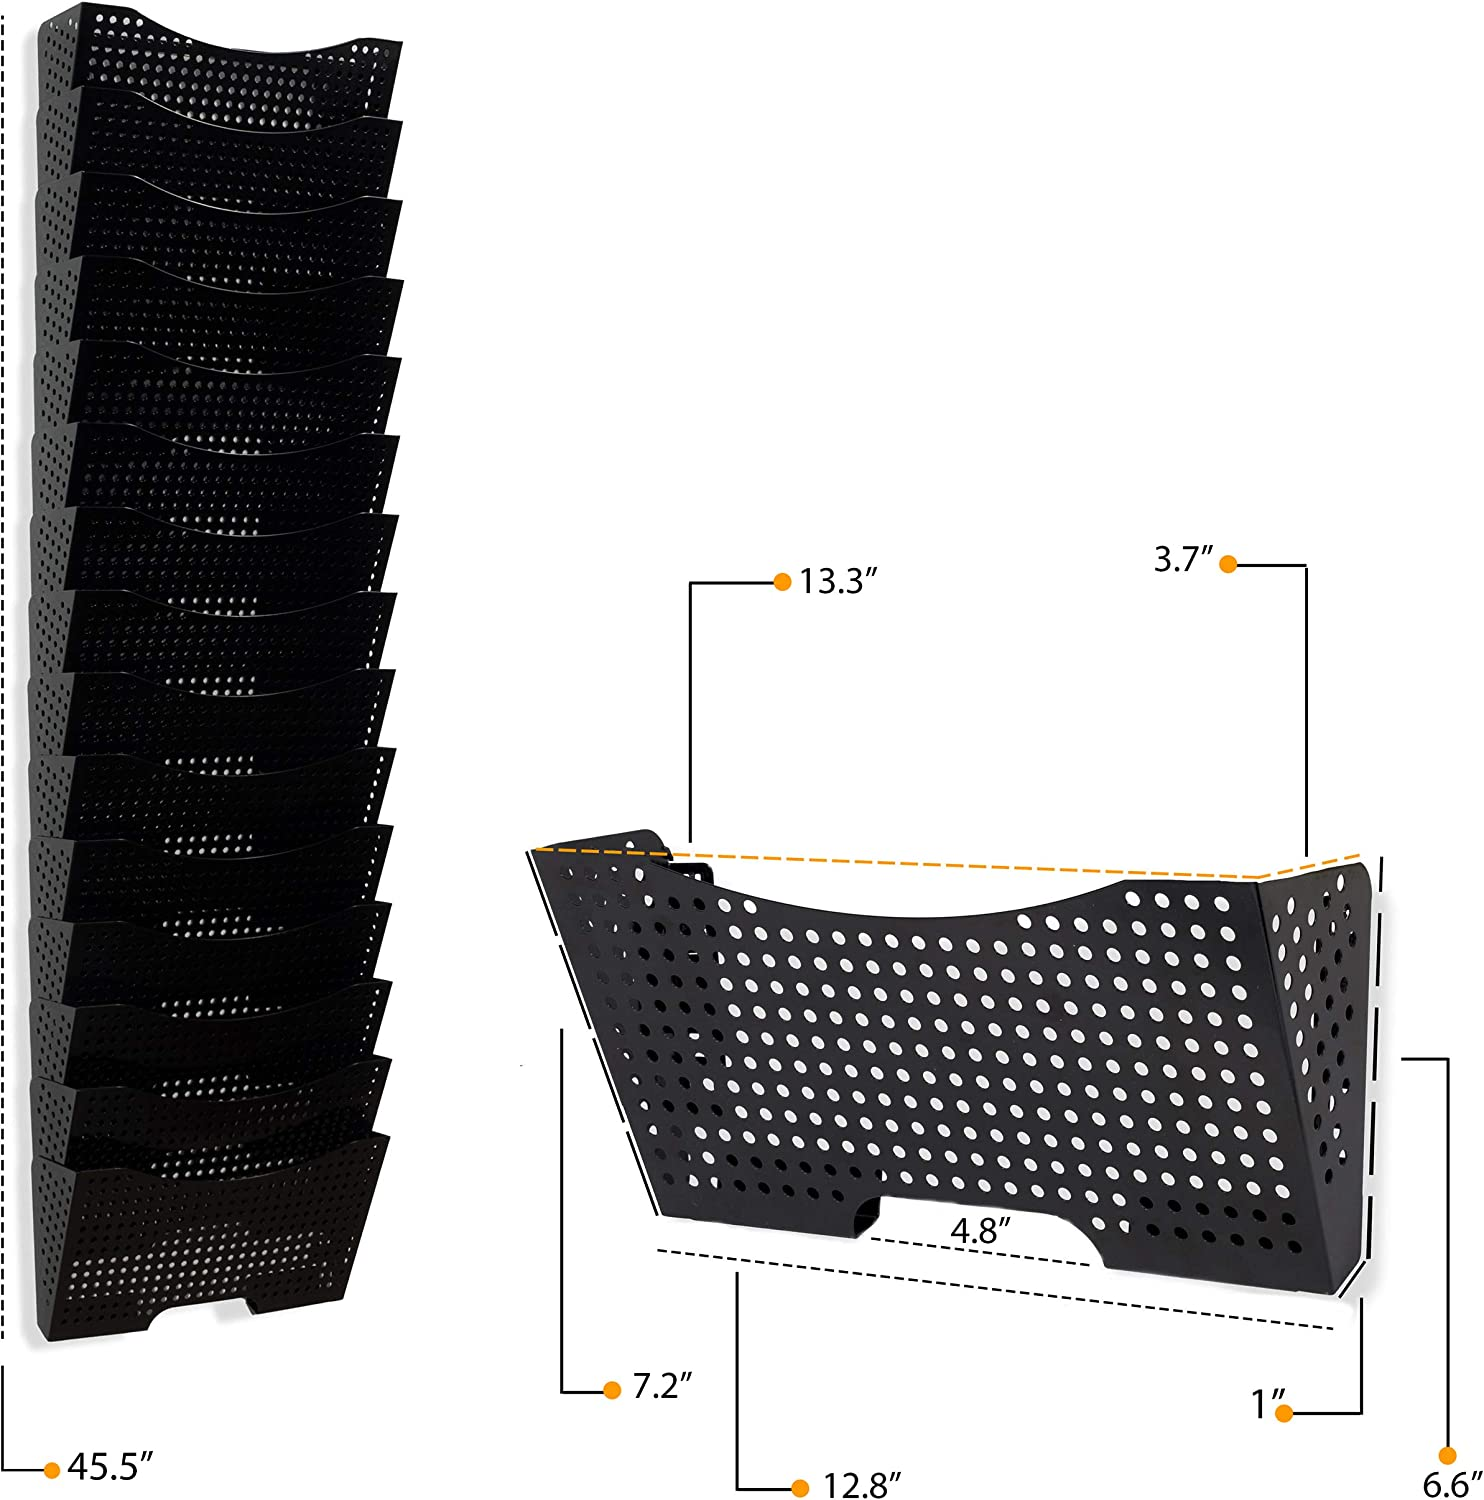 Black Wallniture Lisbon Wall Mounted File Holder and Desk Organizer 5-Tier Metal Office Organization and Storage Rack